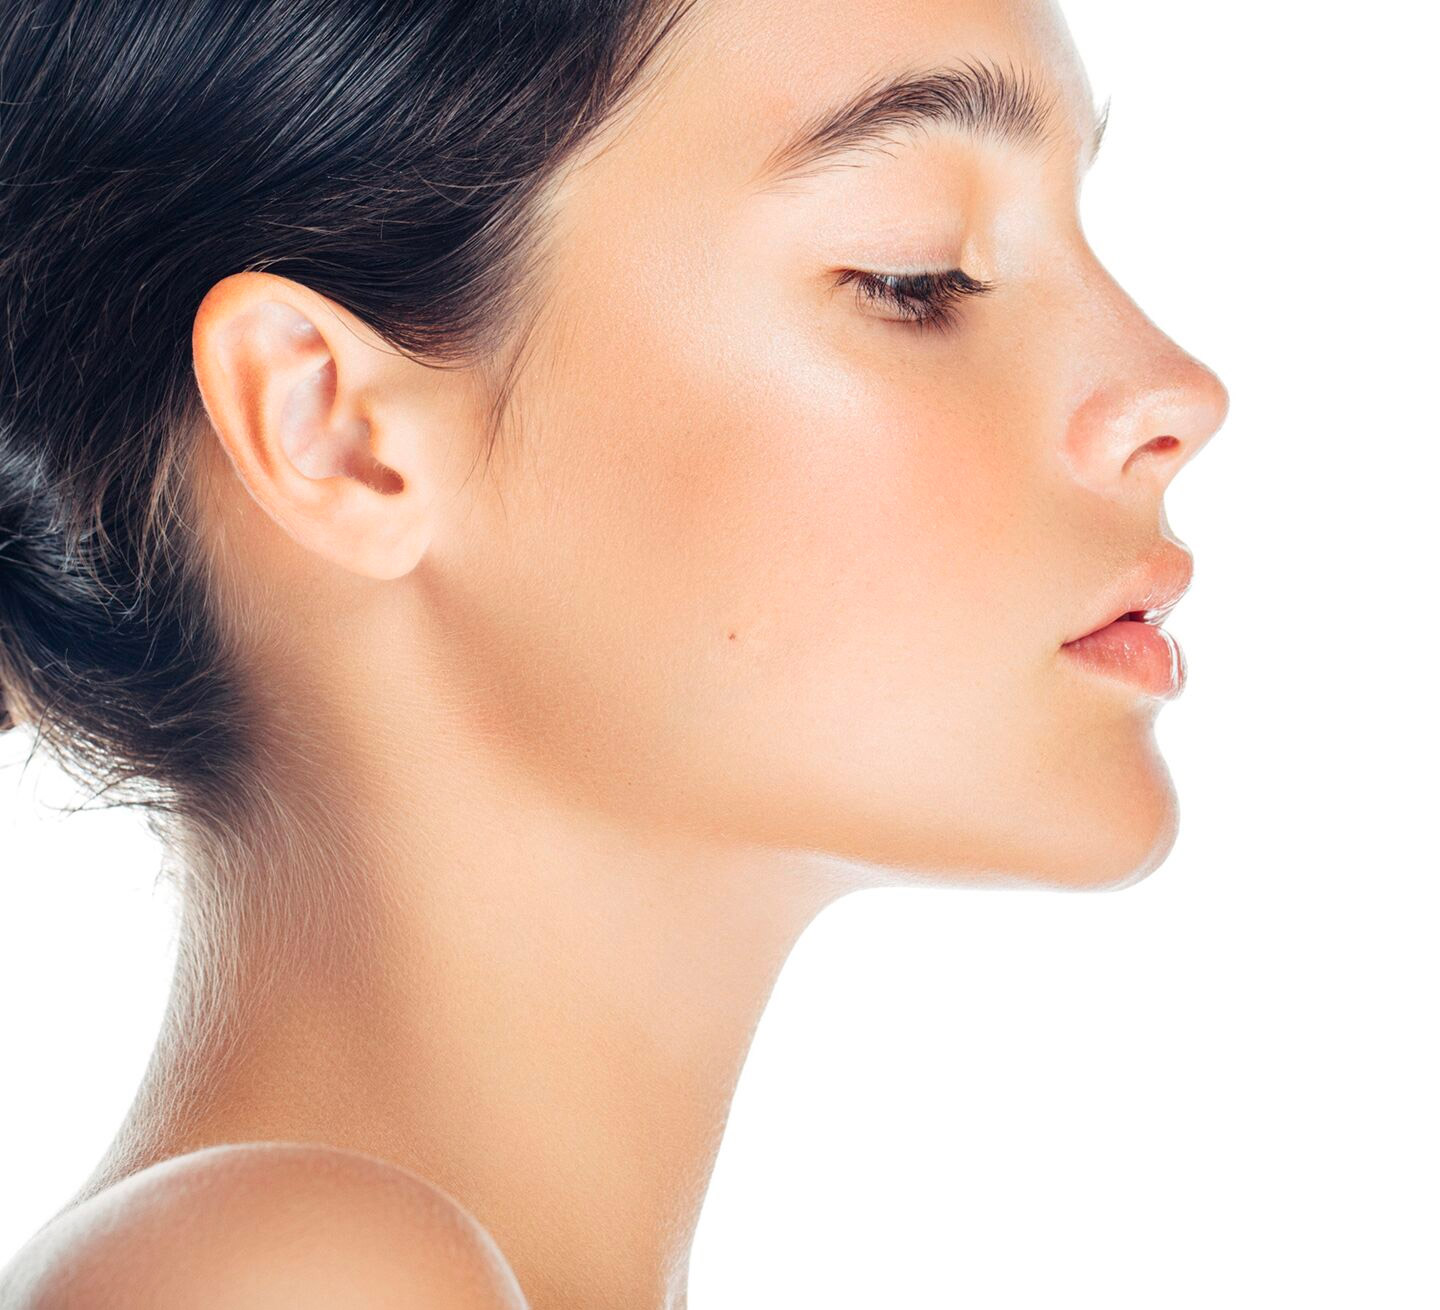 Chin Augmentation Beverly Hills